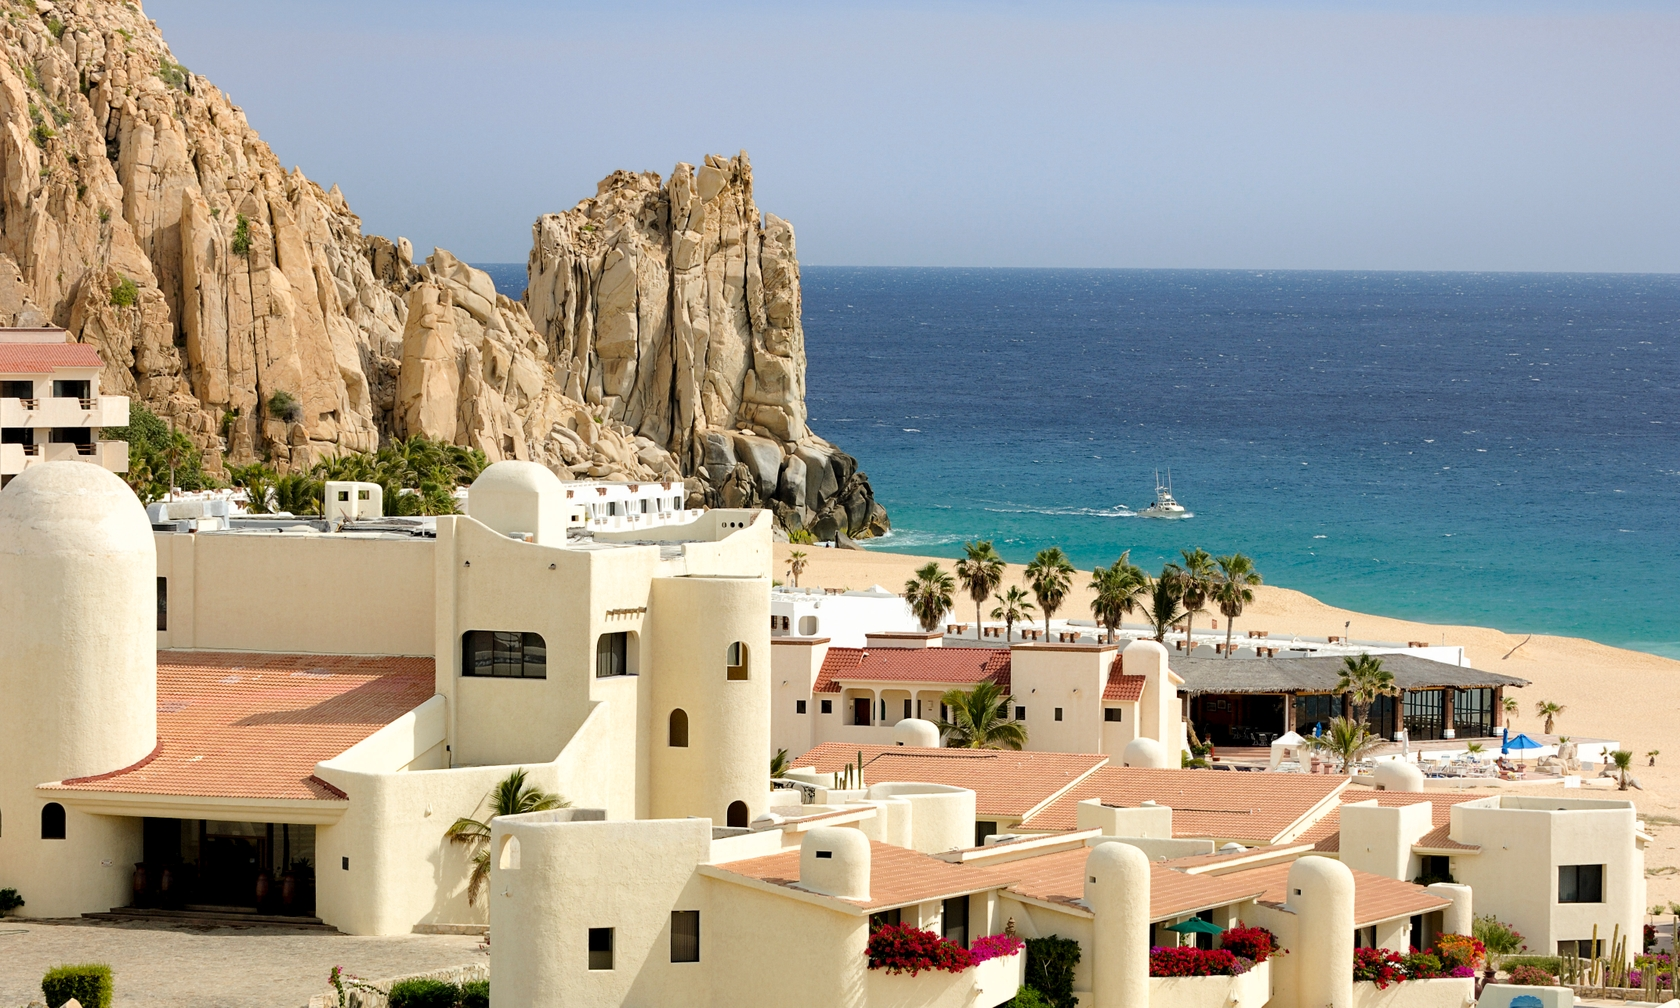 Vacation rental houses in Cabo San Lucas